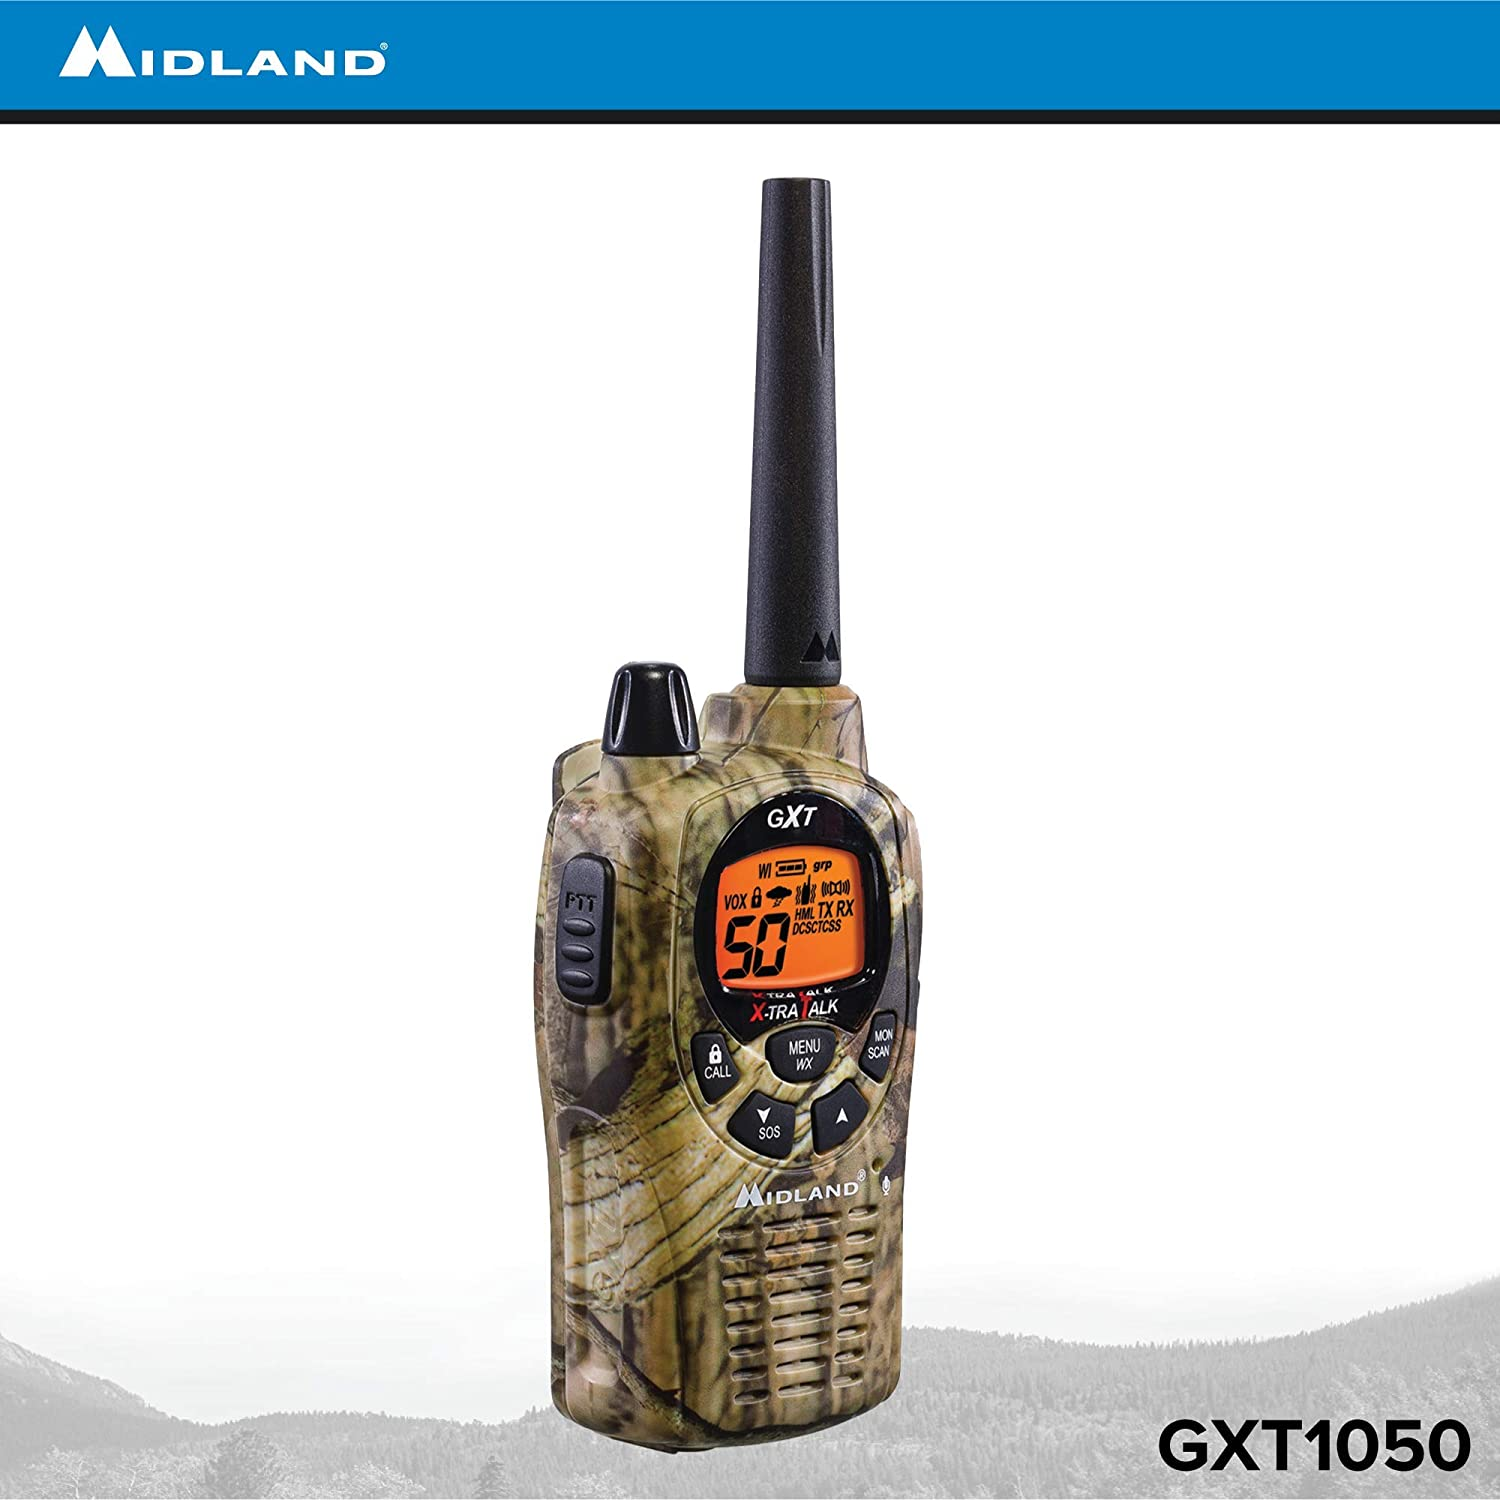 Midland GXT1050VP4 50 Channel GMRS Two-Way Radio Up to 36 Mile Range Walkie Talkie Pair Pack Mossy Oak Camo